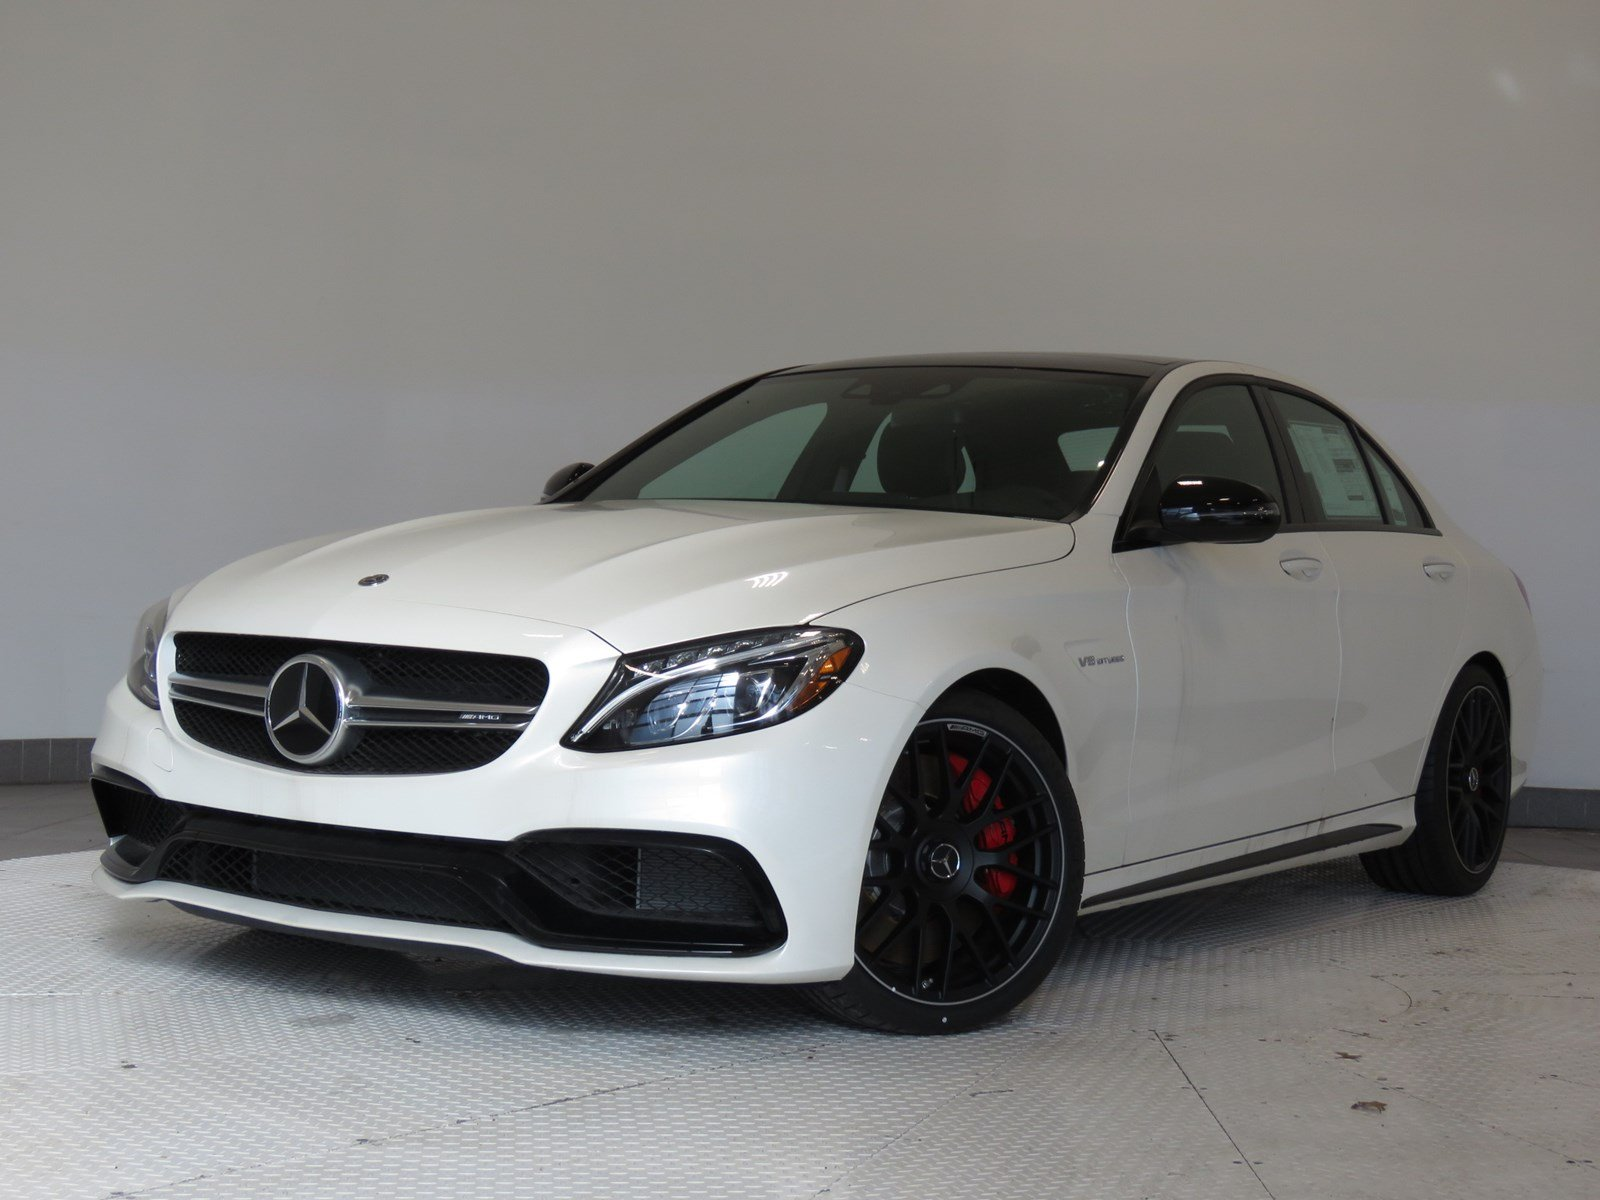 New 2018 Mercedes Benz C Class AMG C 63 S Sedan SEDAN in Fort